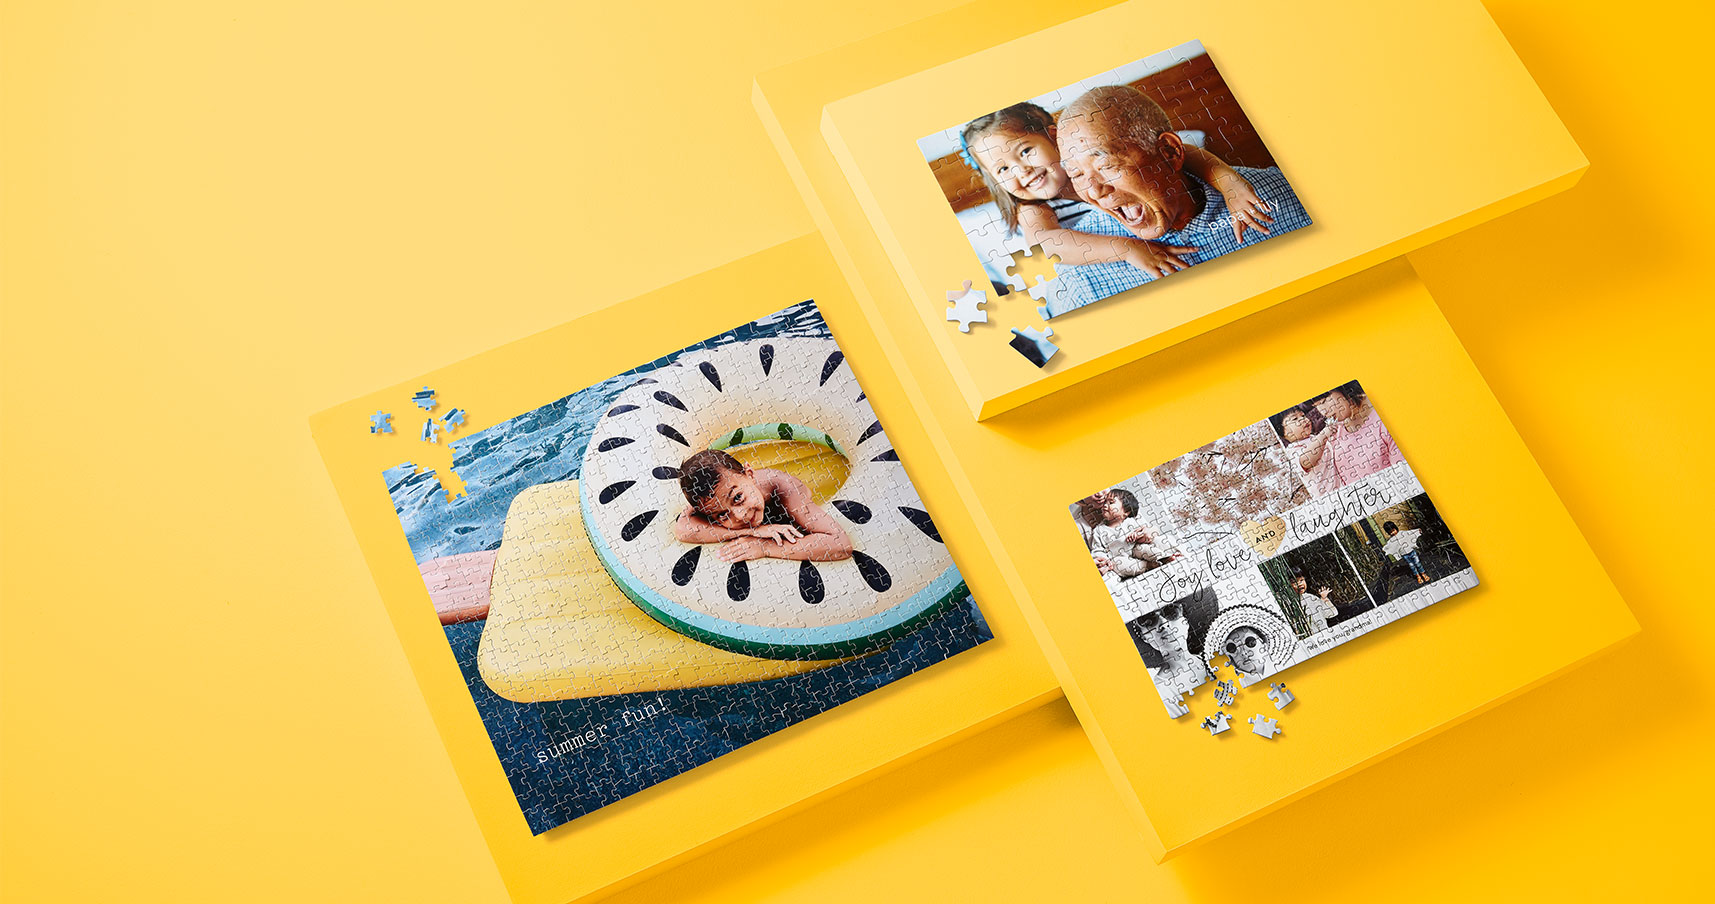 Three personalized jigsaw puzzles on yellow background. One kids puzzle, one photo of grandpa and grandkid, and one photo collage puzzle